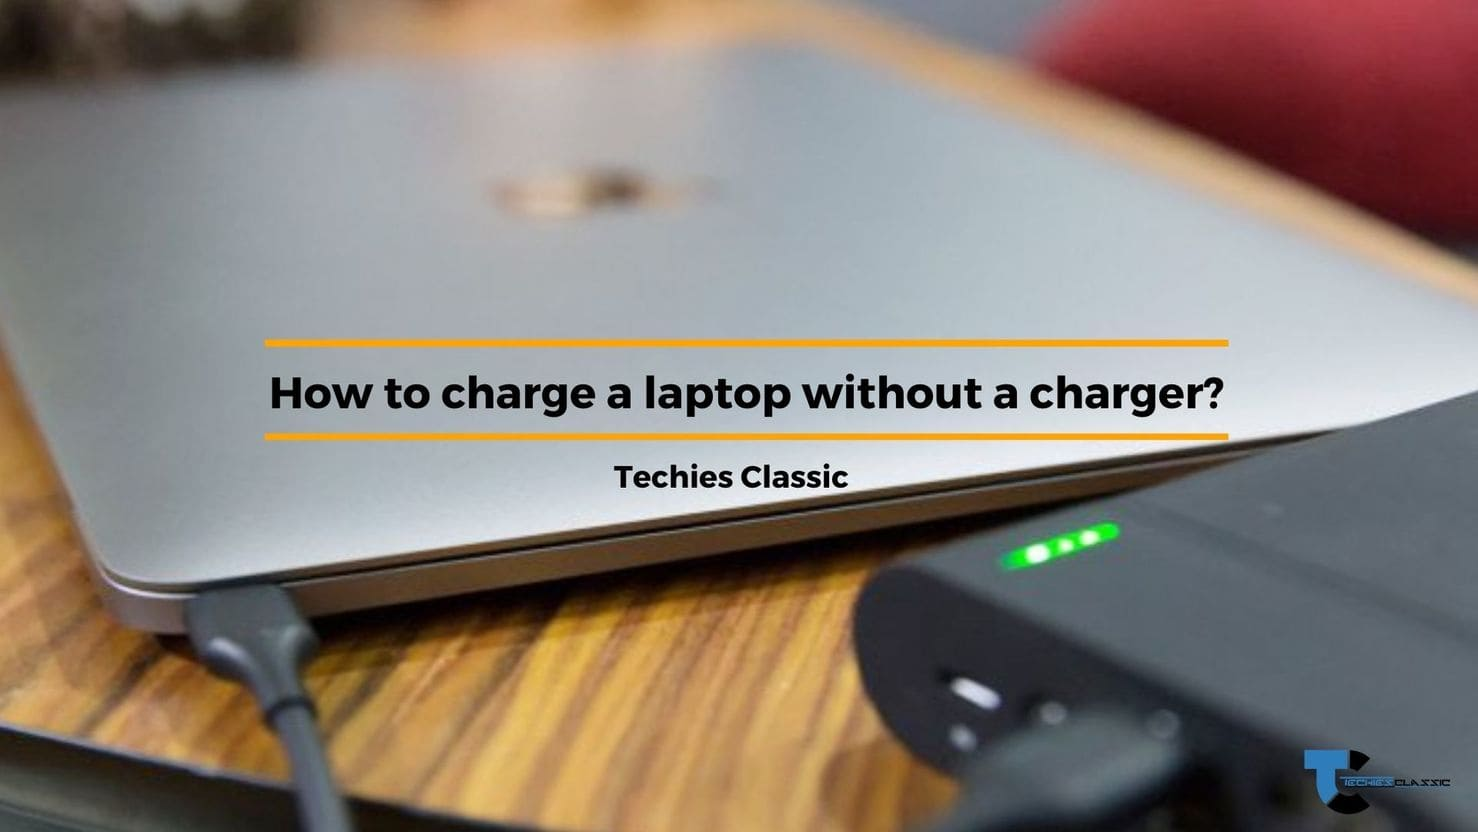 How to charge a laptop without a charger?